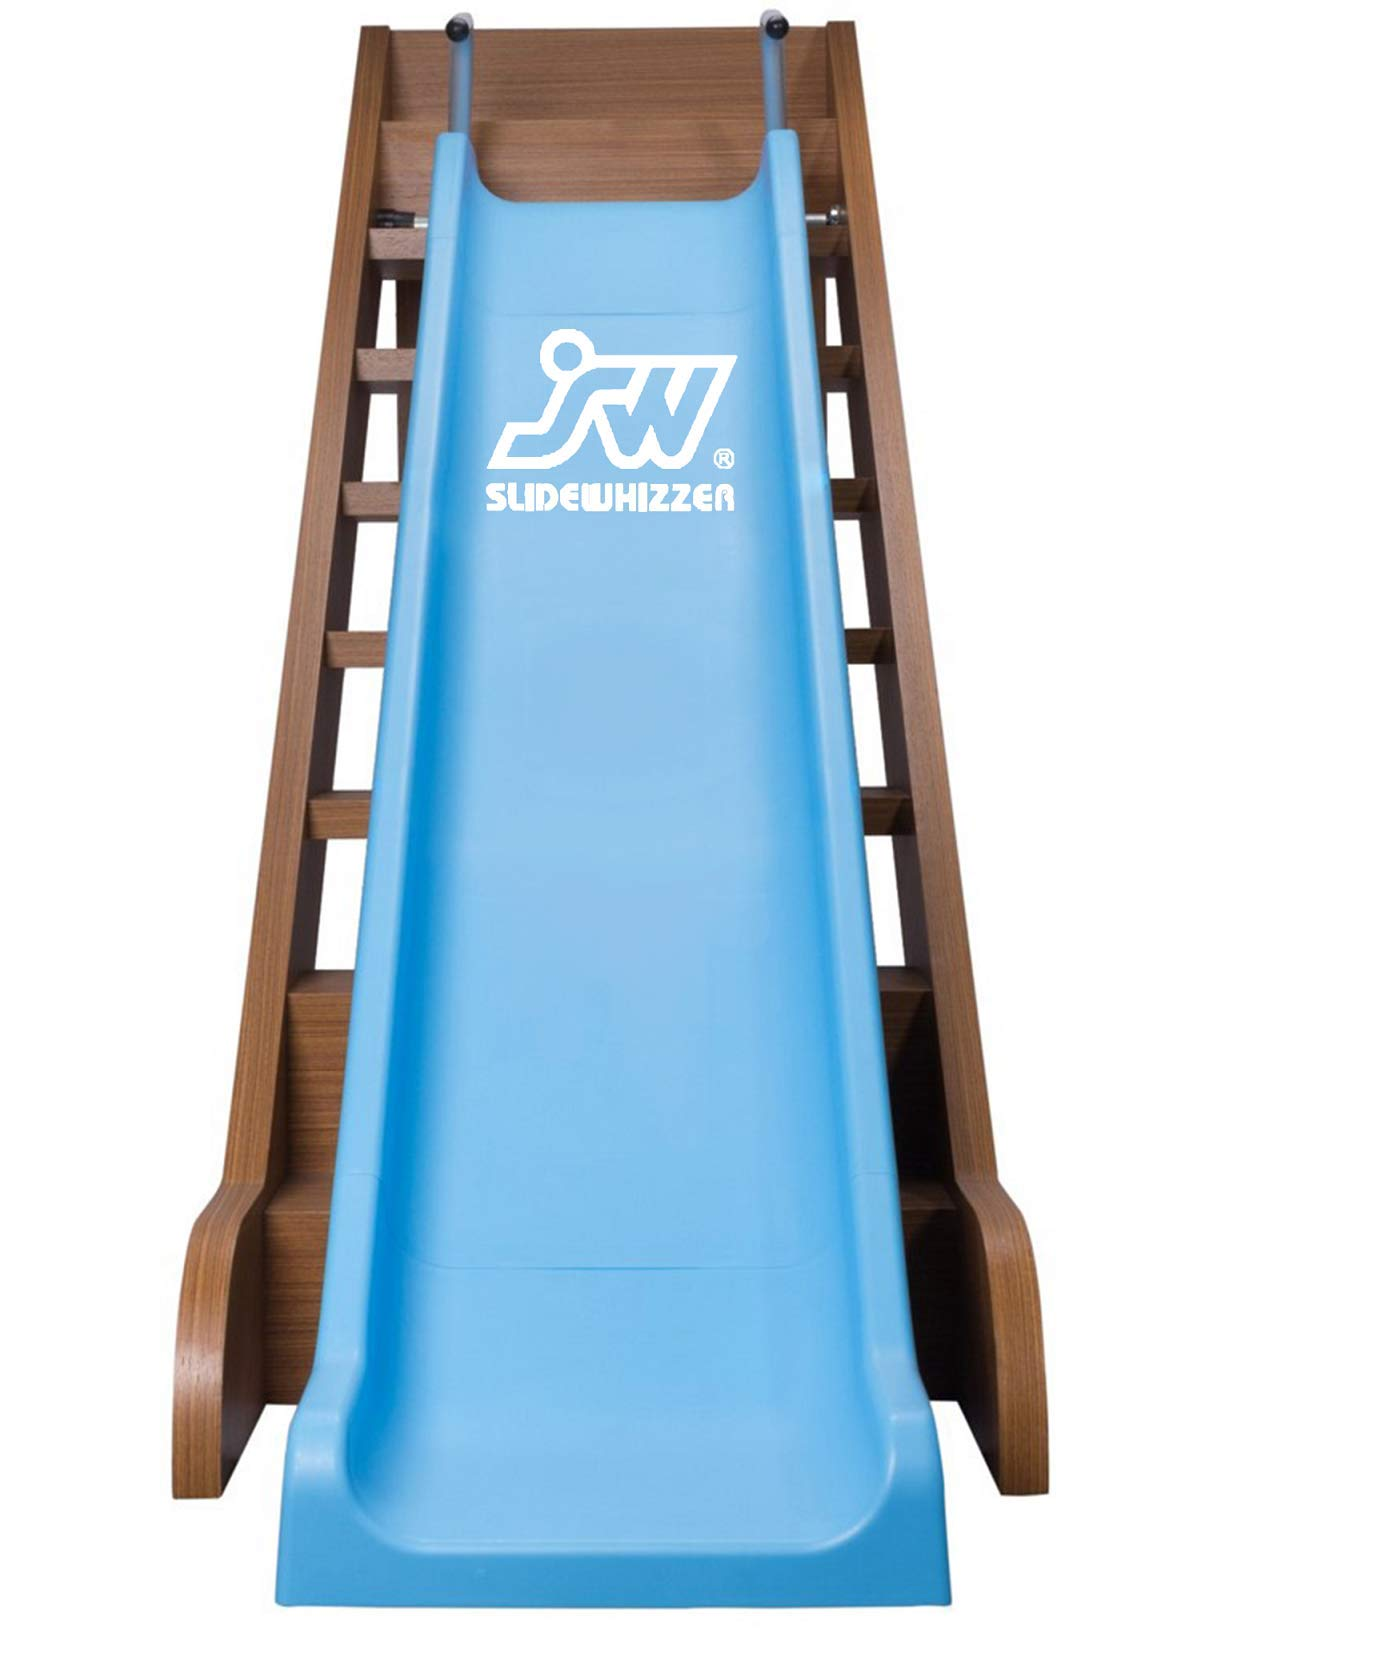 SLIDEWHIZZER Indoor Toy playset Toys - Kids/Toddler/Boys/Girls Safe Playground Children - Parents/Grandparents Gifts to Your Precious Ones by SLIDEWHIZZER